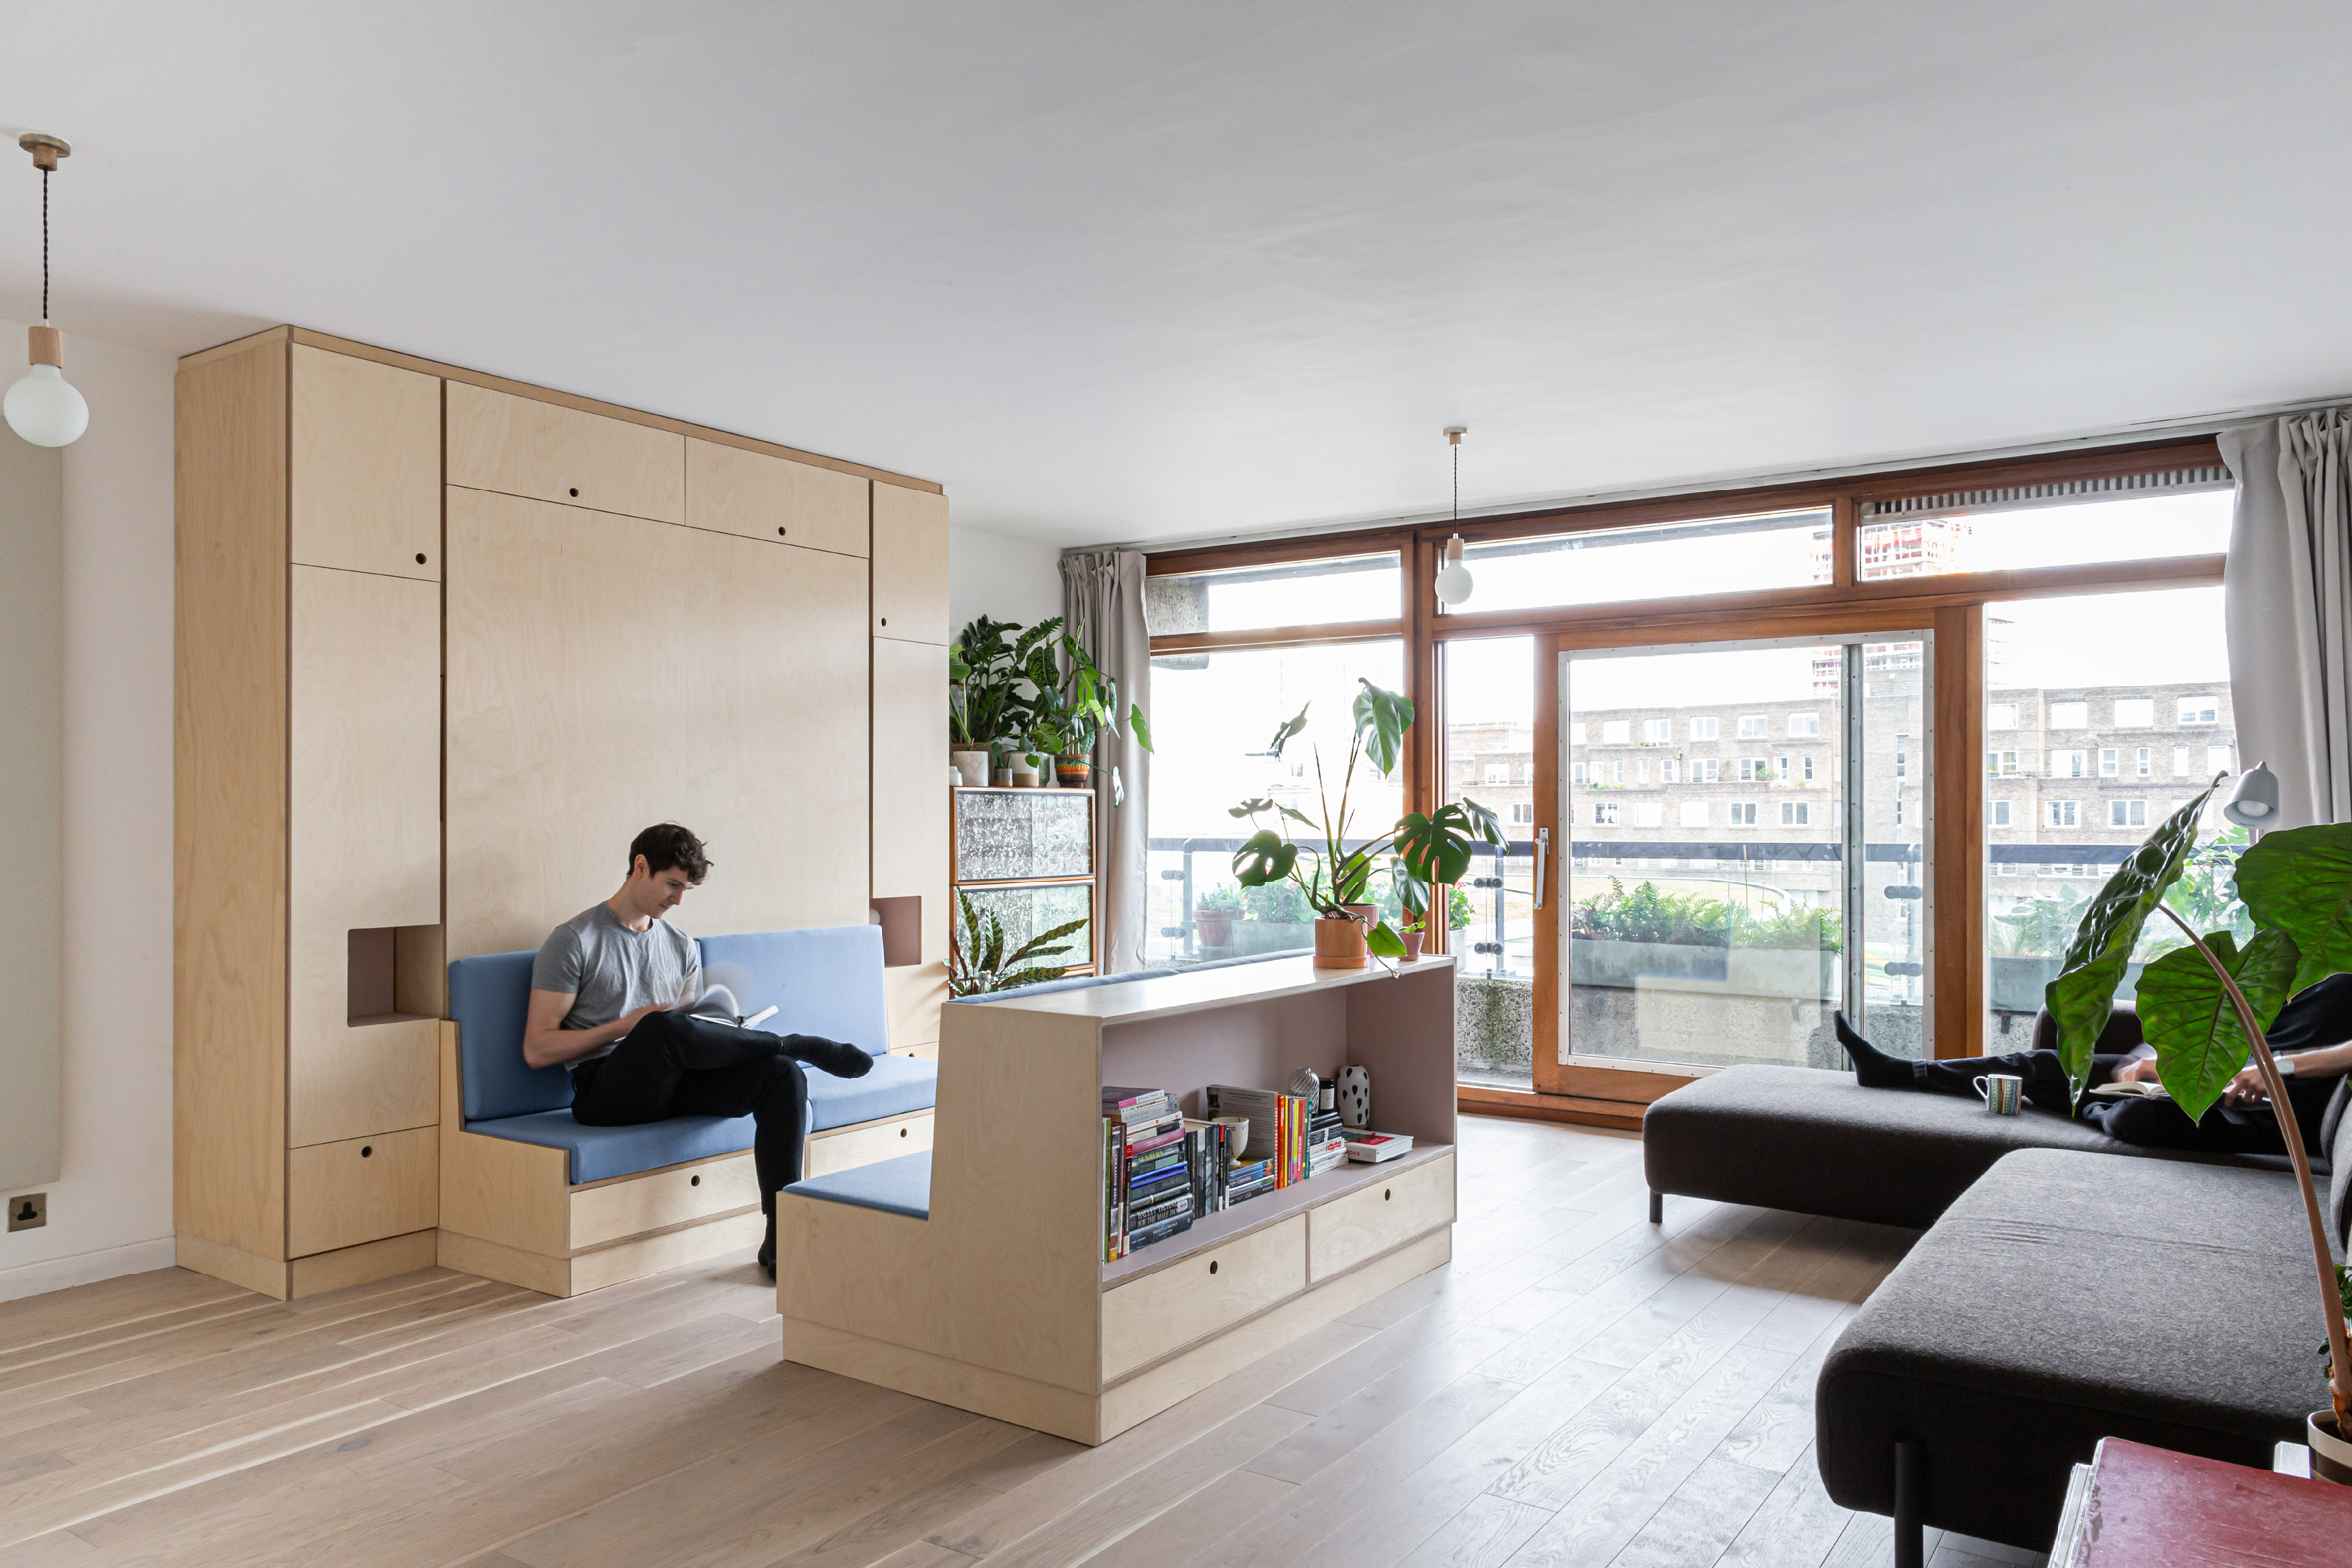 Barbican Dancer's Studio by Intervention Architecture seating